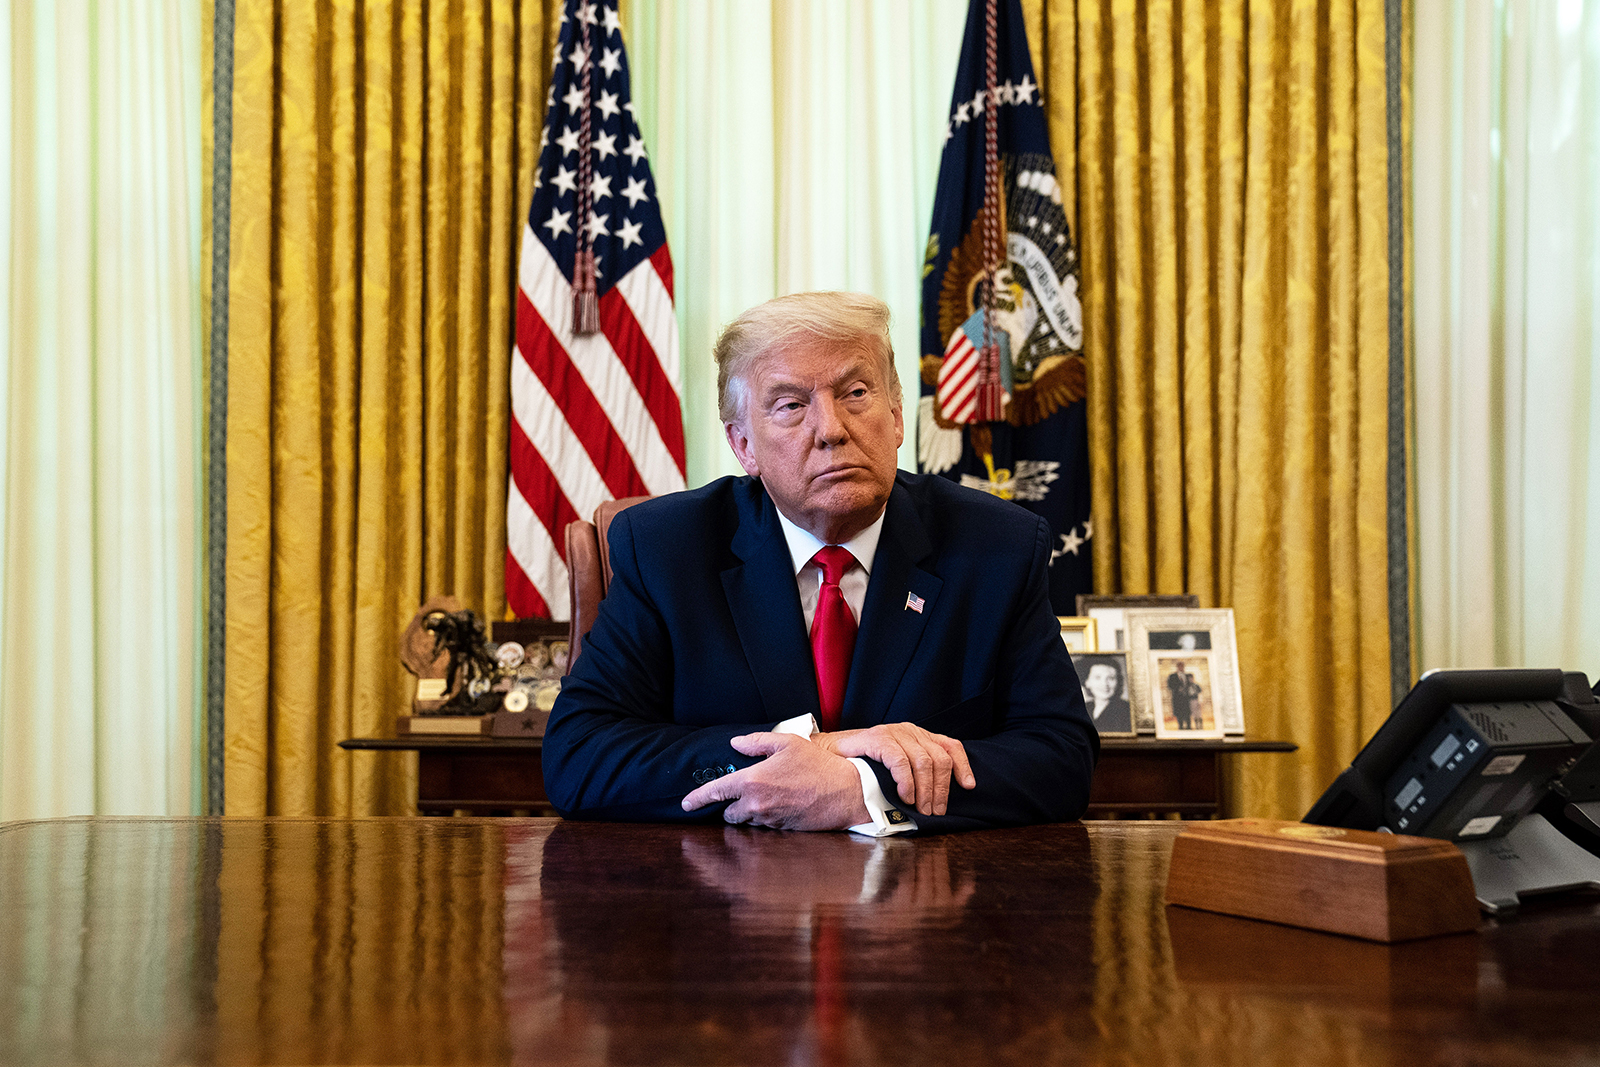 US President Donald Trump listens during an event in the Oval Office of the White House August 28, 2020 in Washington, DC.